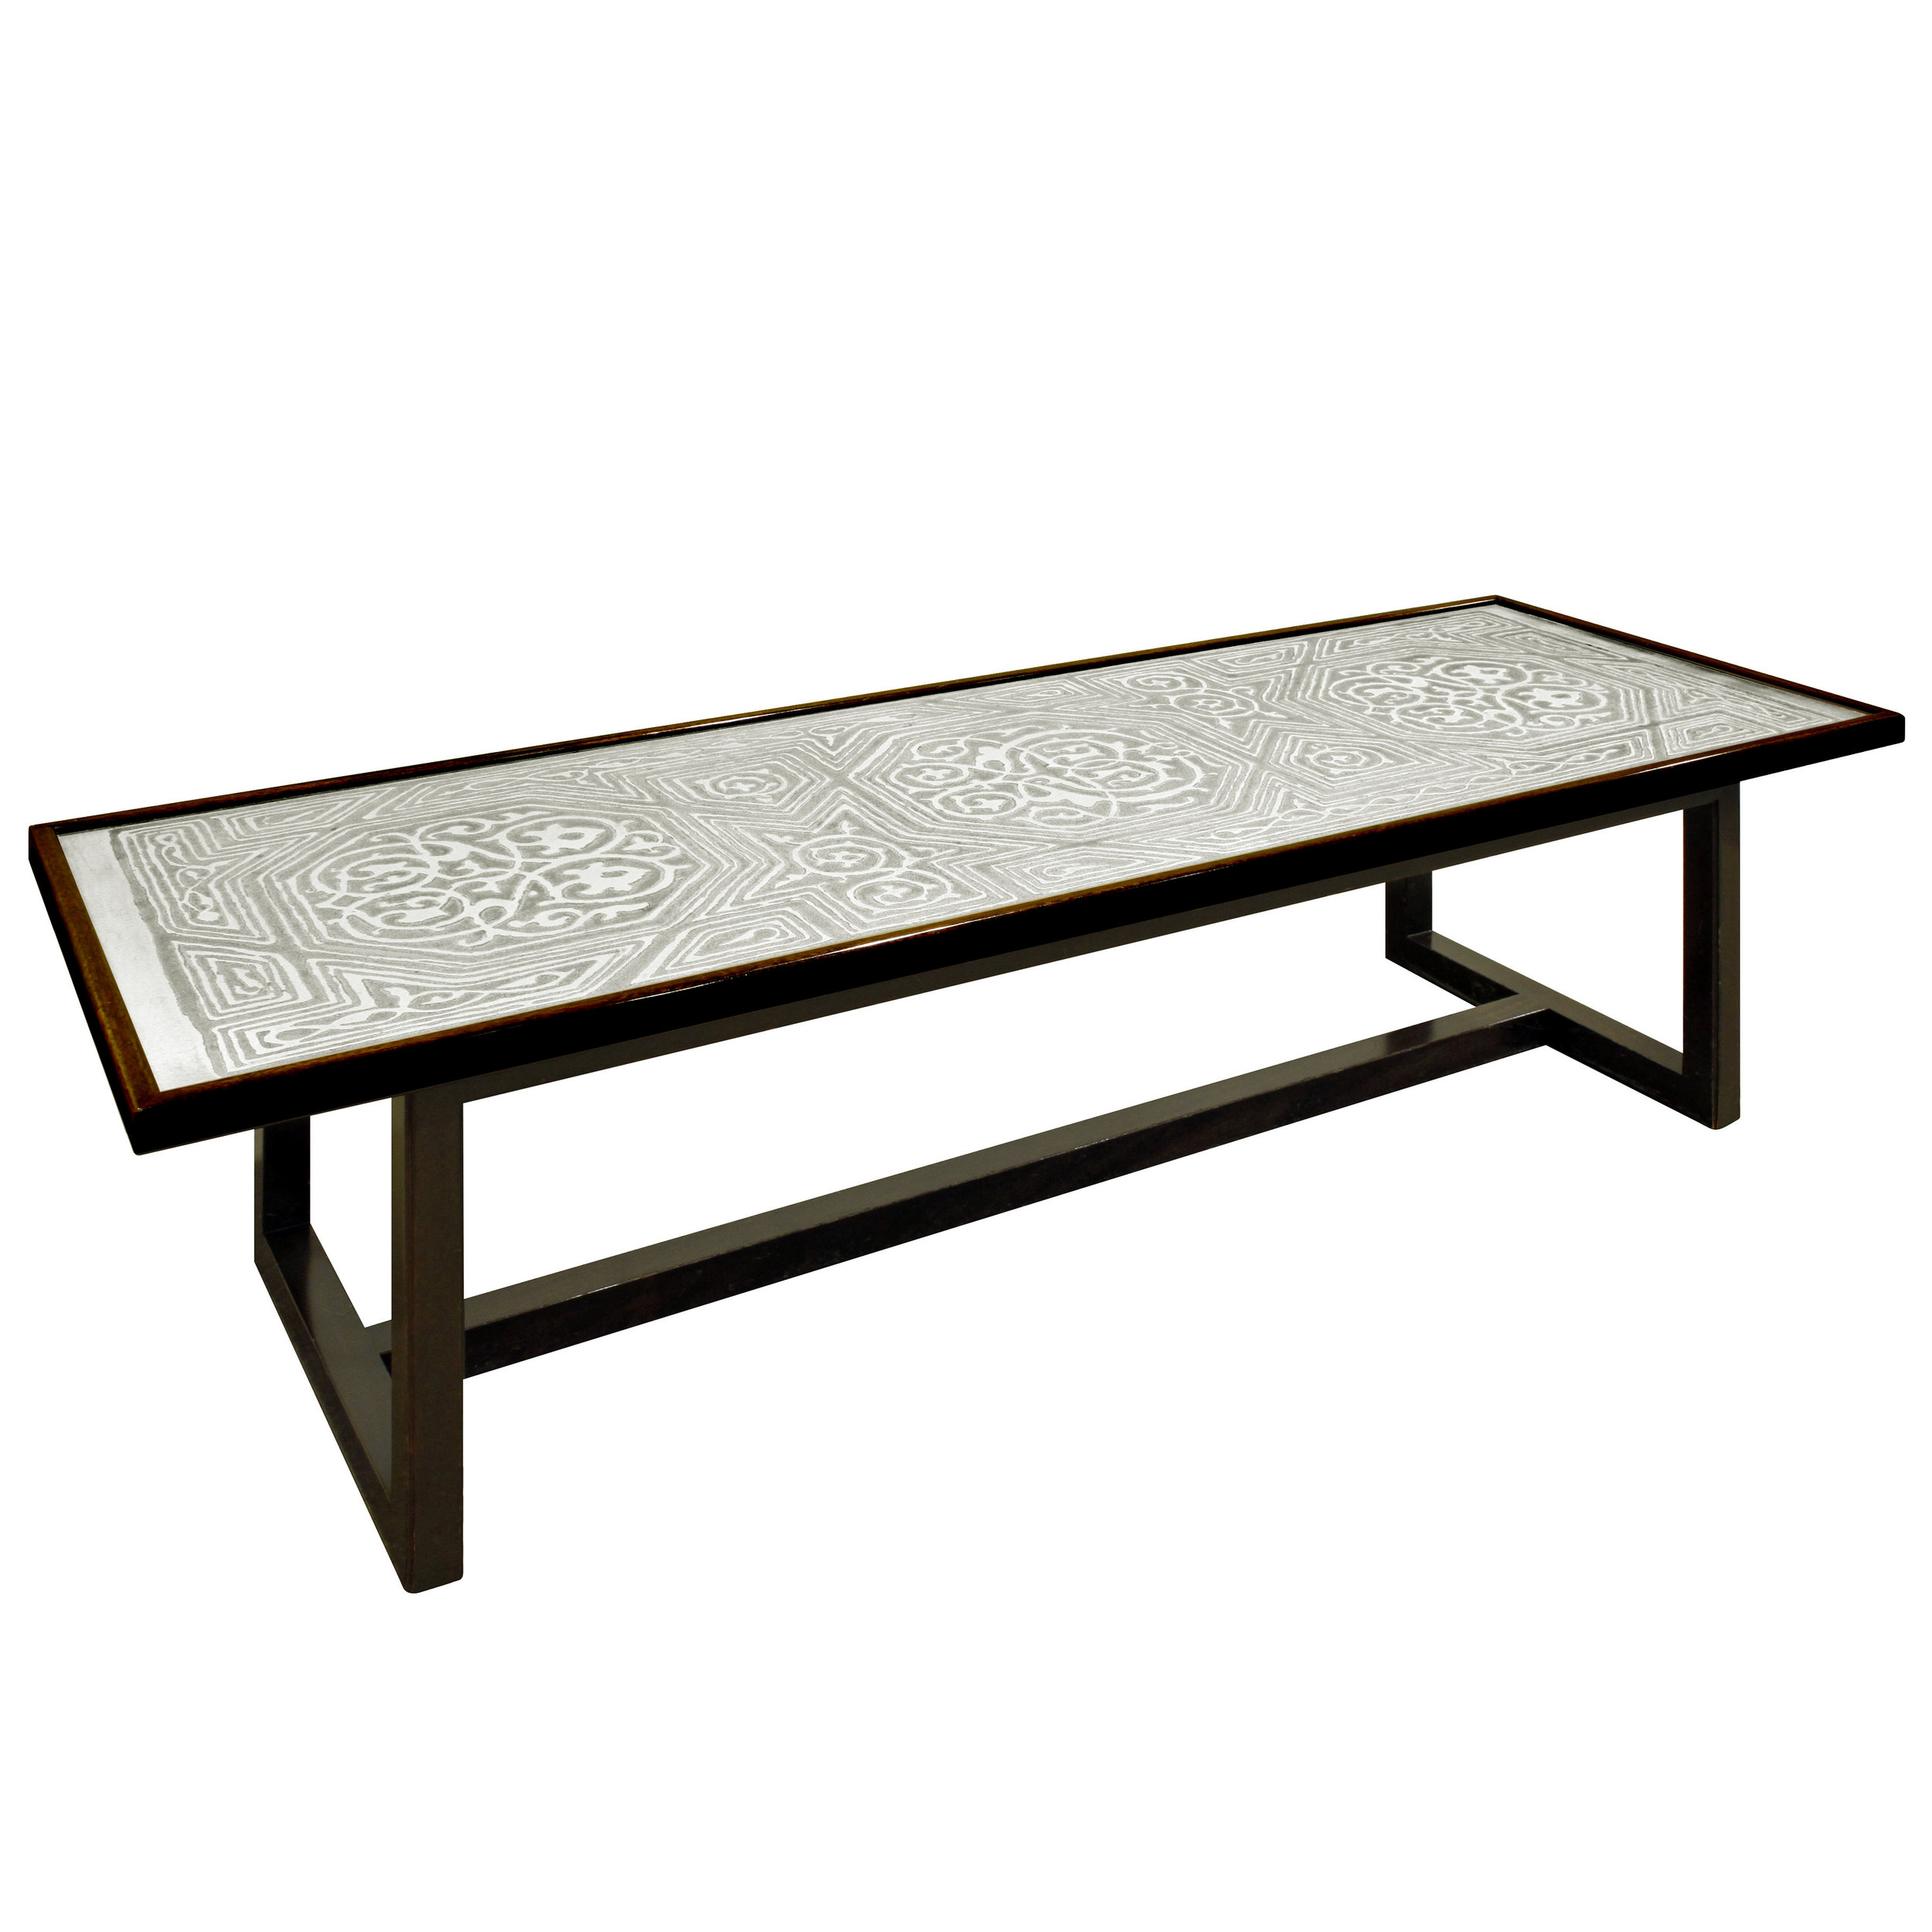 Probber 120 etched metal top coffeetable402 agl.jpg